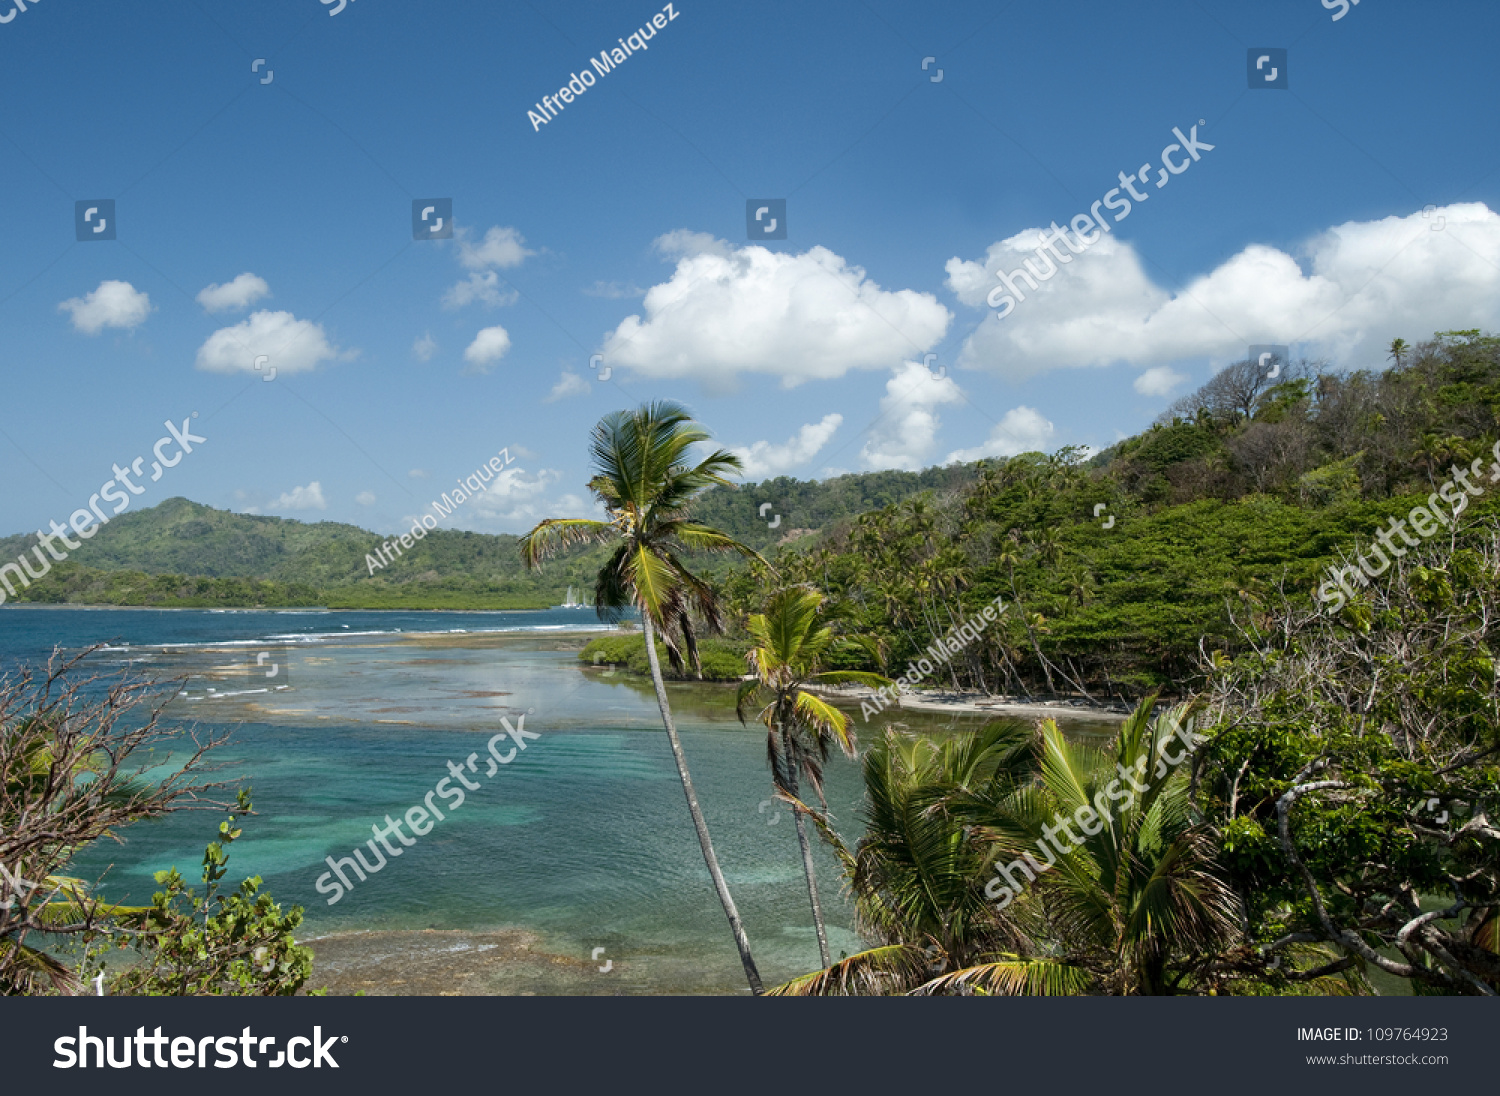 Playa Cacique The Canal and Central Panama, View Shore Palm Trees Punta Cacique Stock Photo 109764923 ...